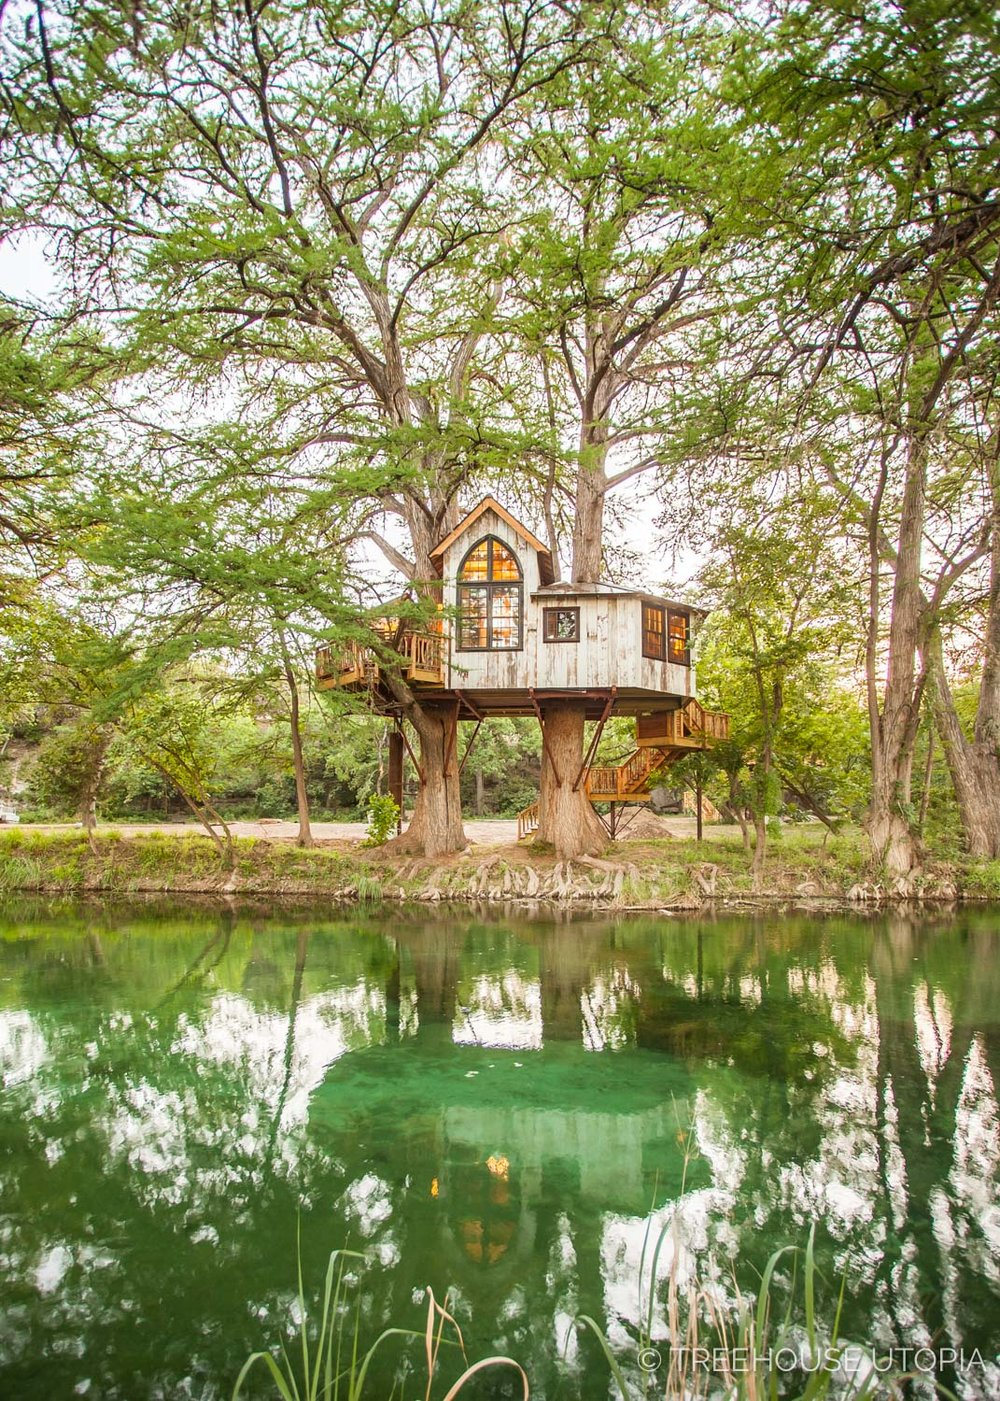 Chapelle at Treehouse Utopia  overlooks the river